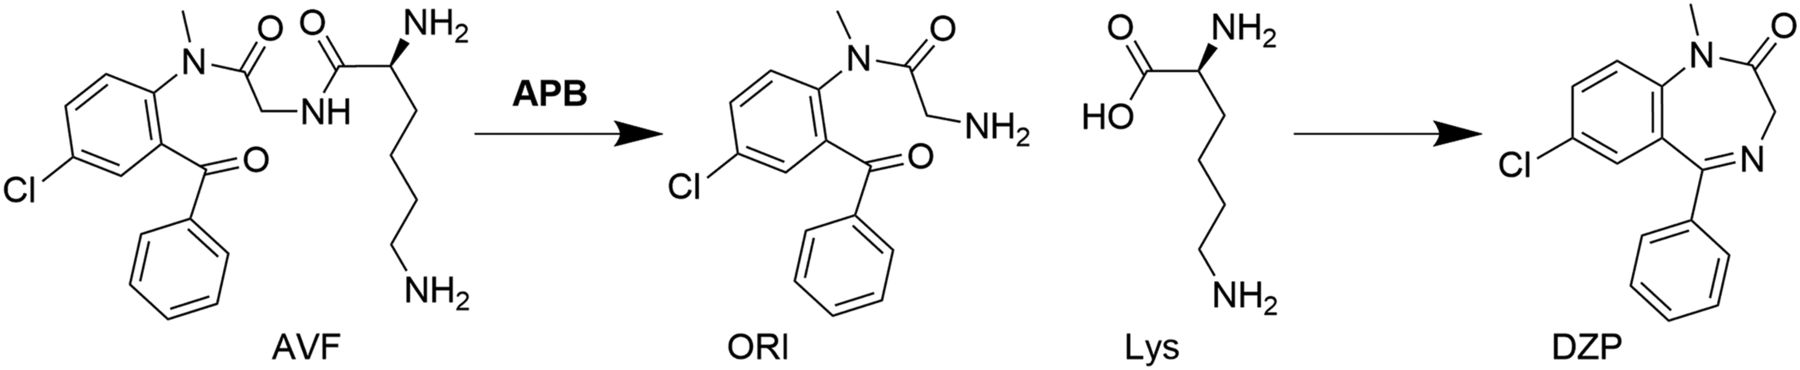 Intranasal Coadministration of a Diazepam Prodrug with a